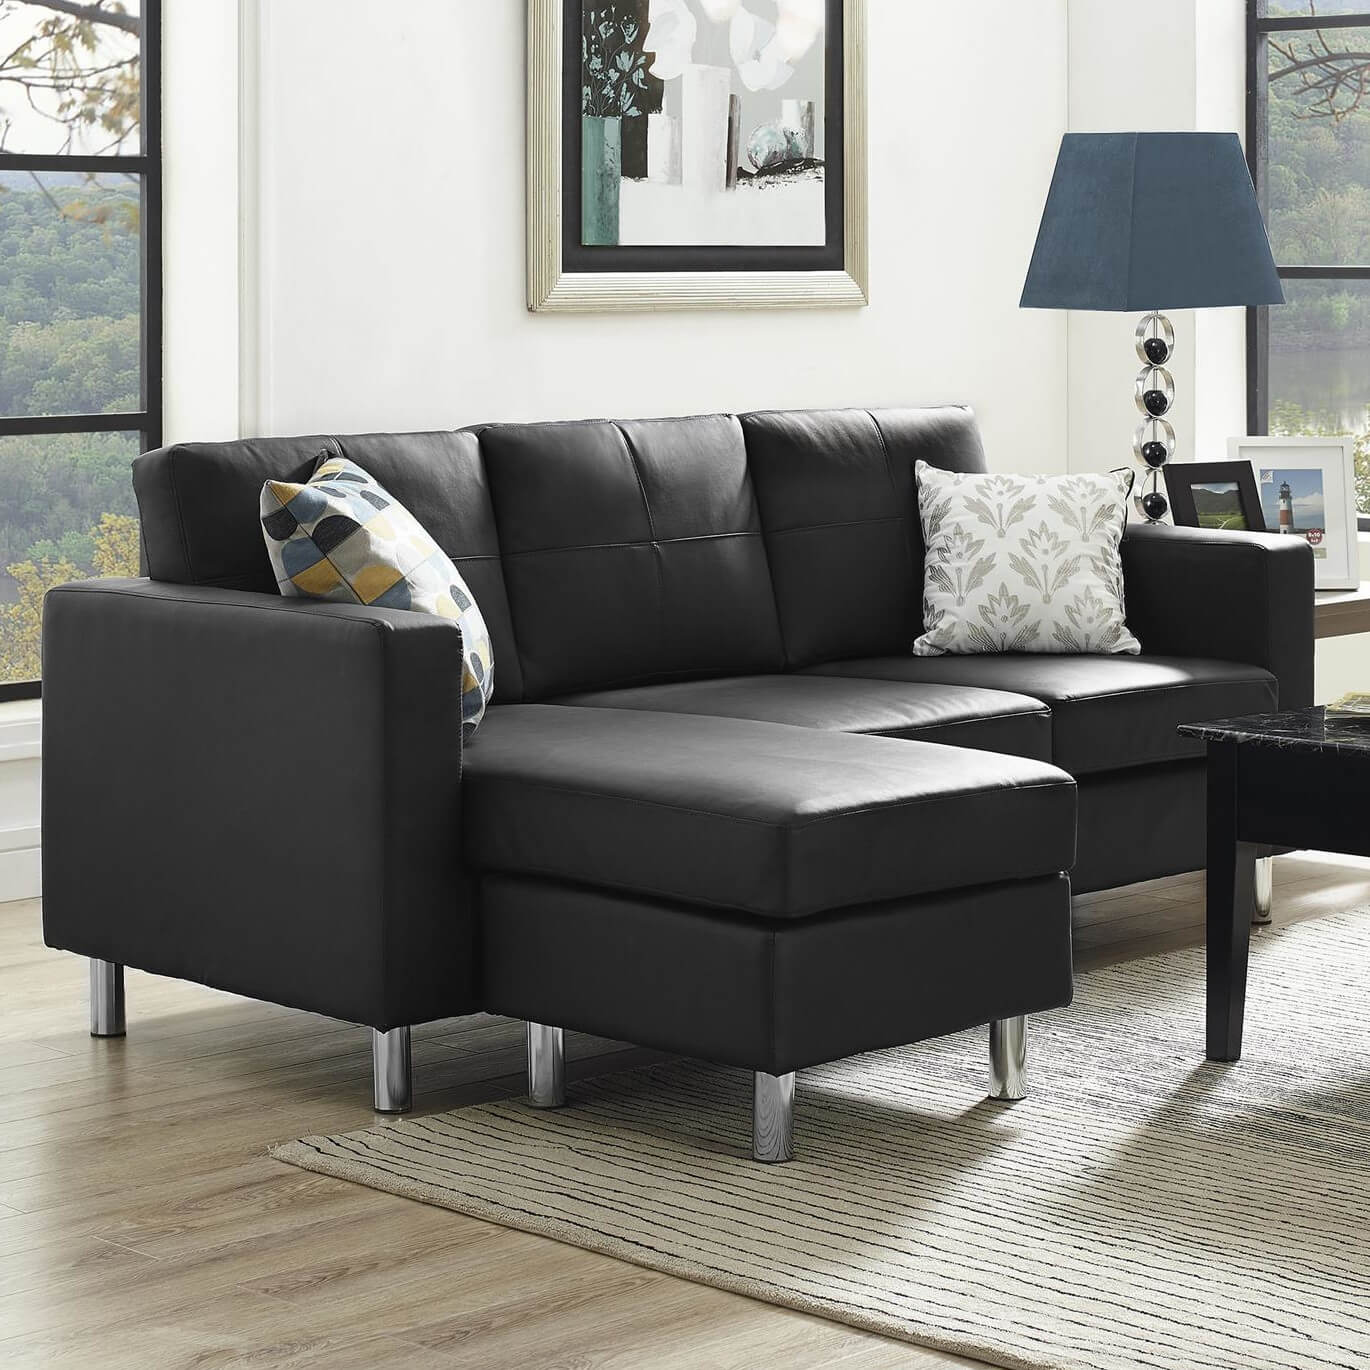 13 sectional sofas under 500 several styles for Black sectional with chaise